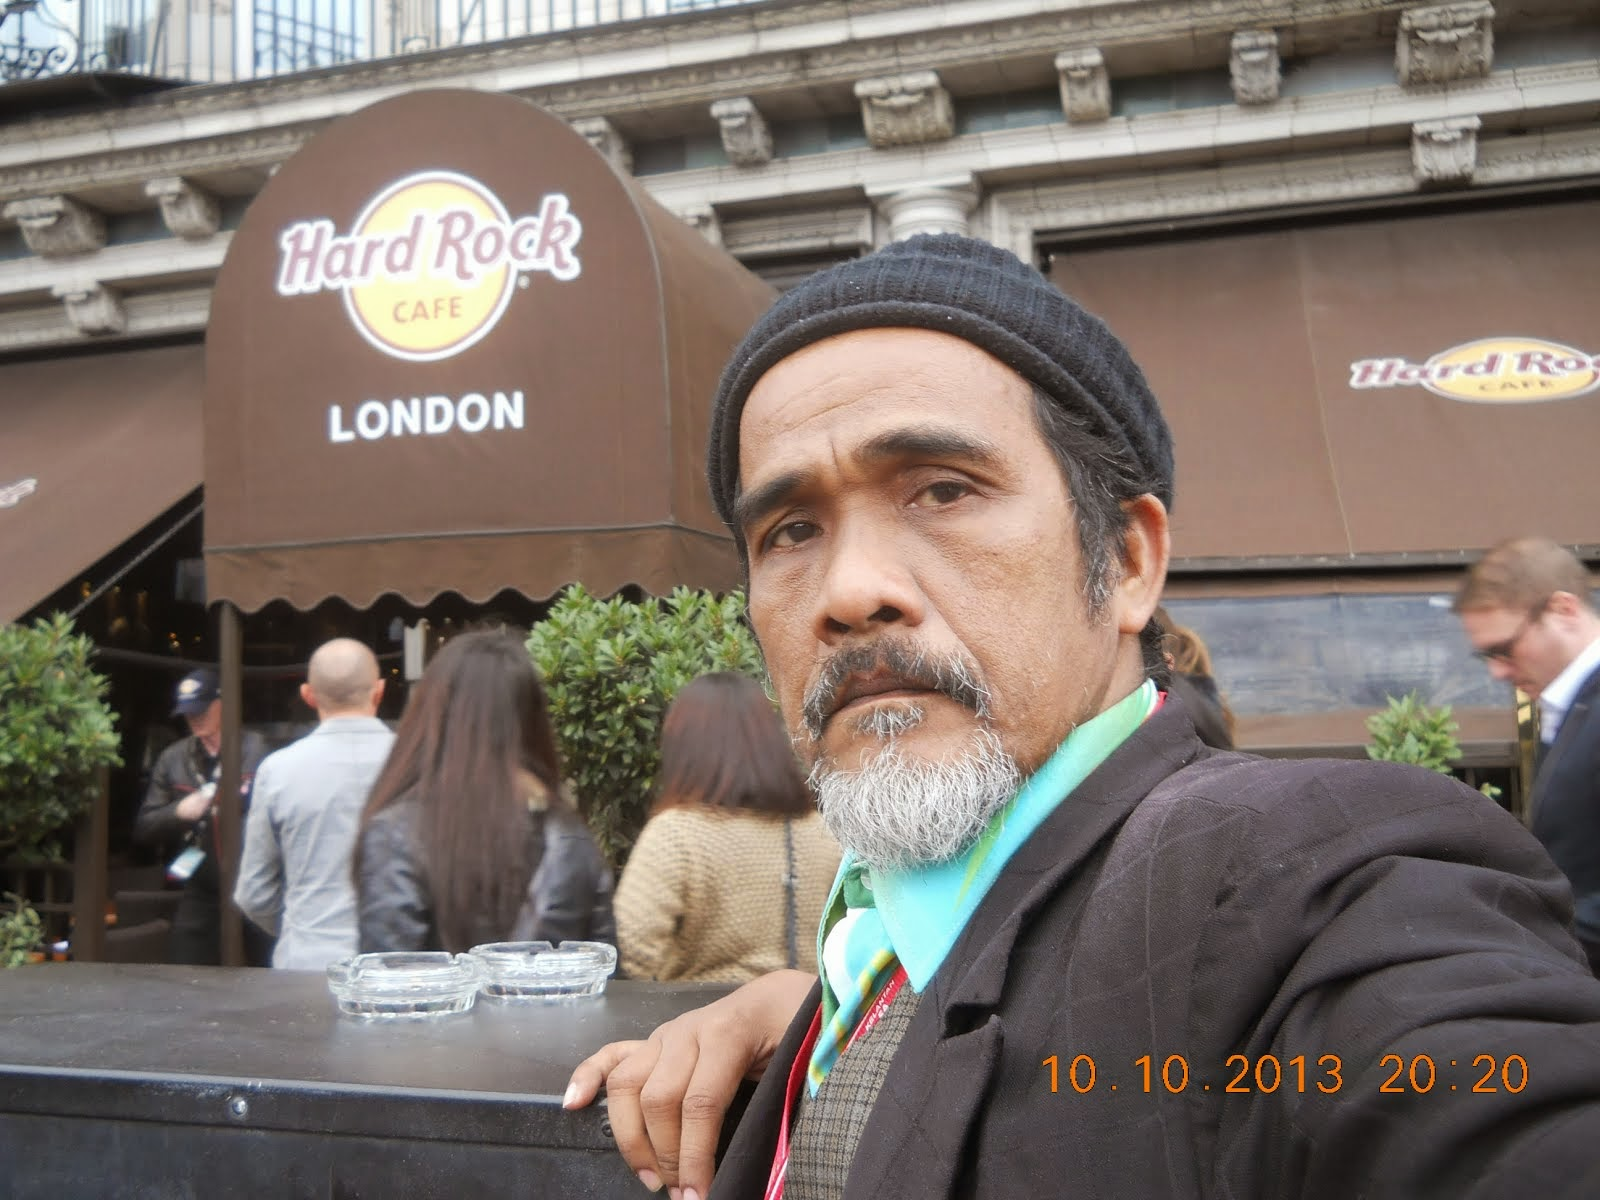 hard rock ,london